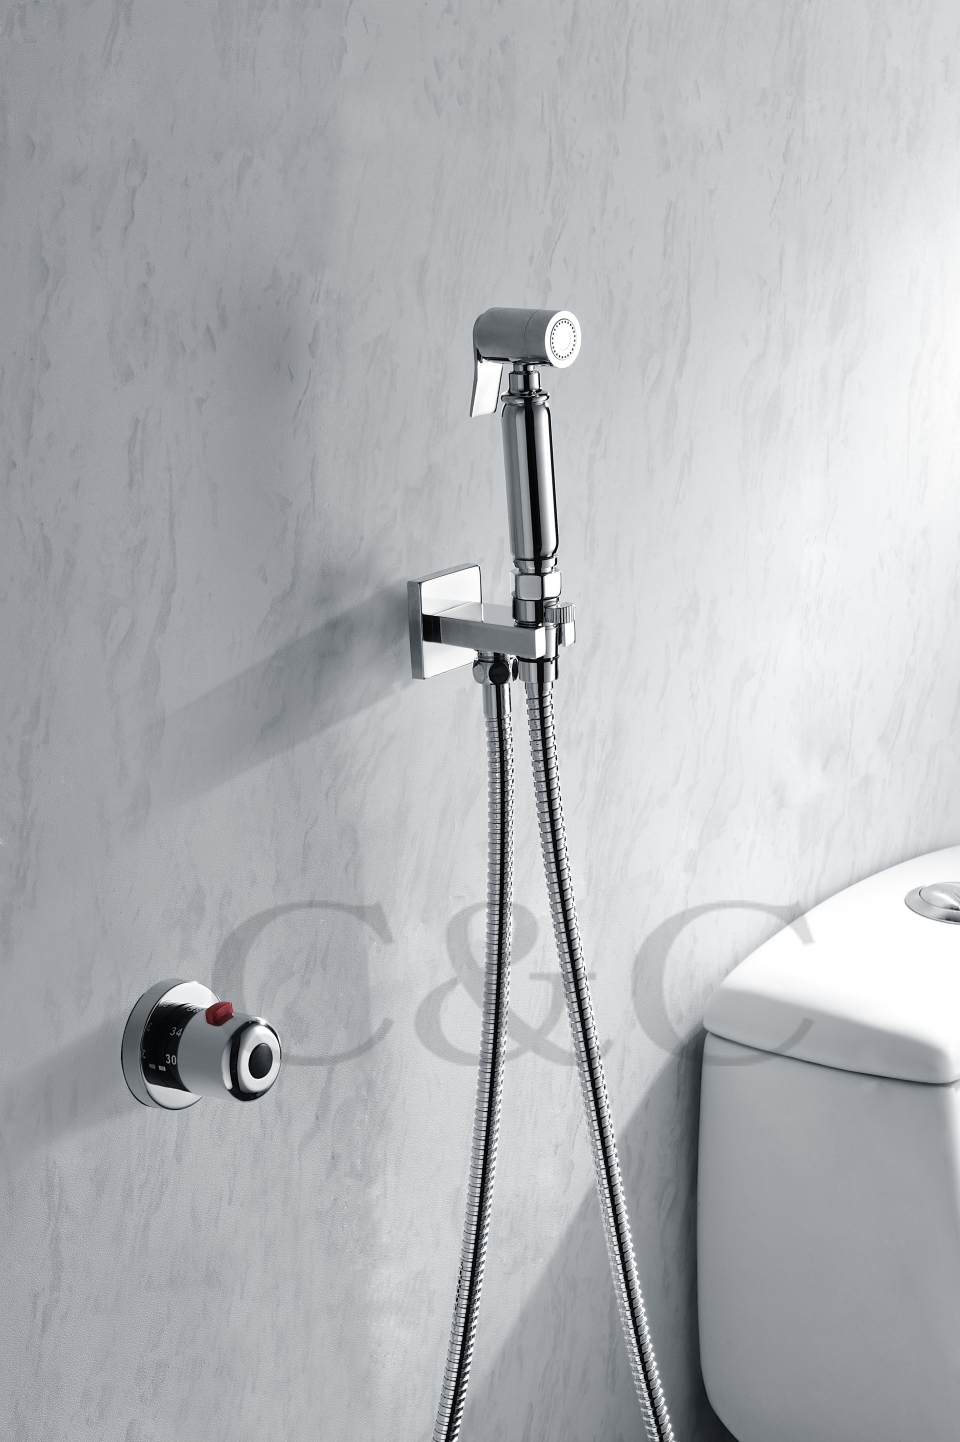 Wall Mounted Handheld Shattaf Bidet Toilet Spray Shower